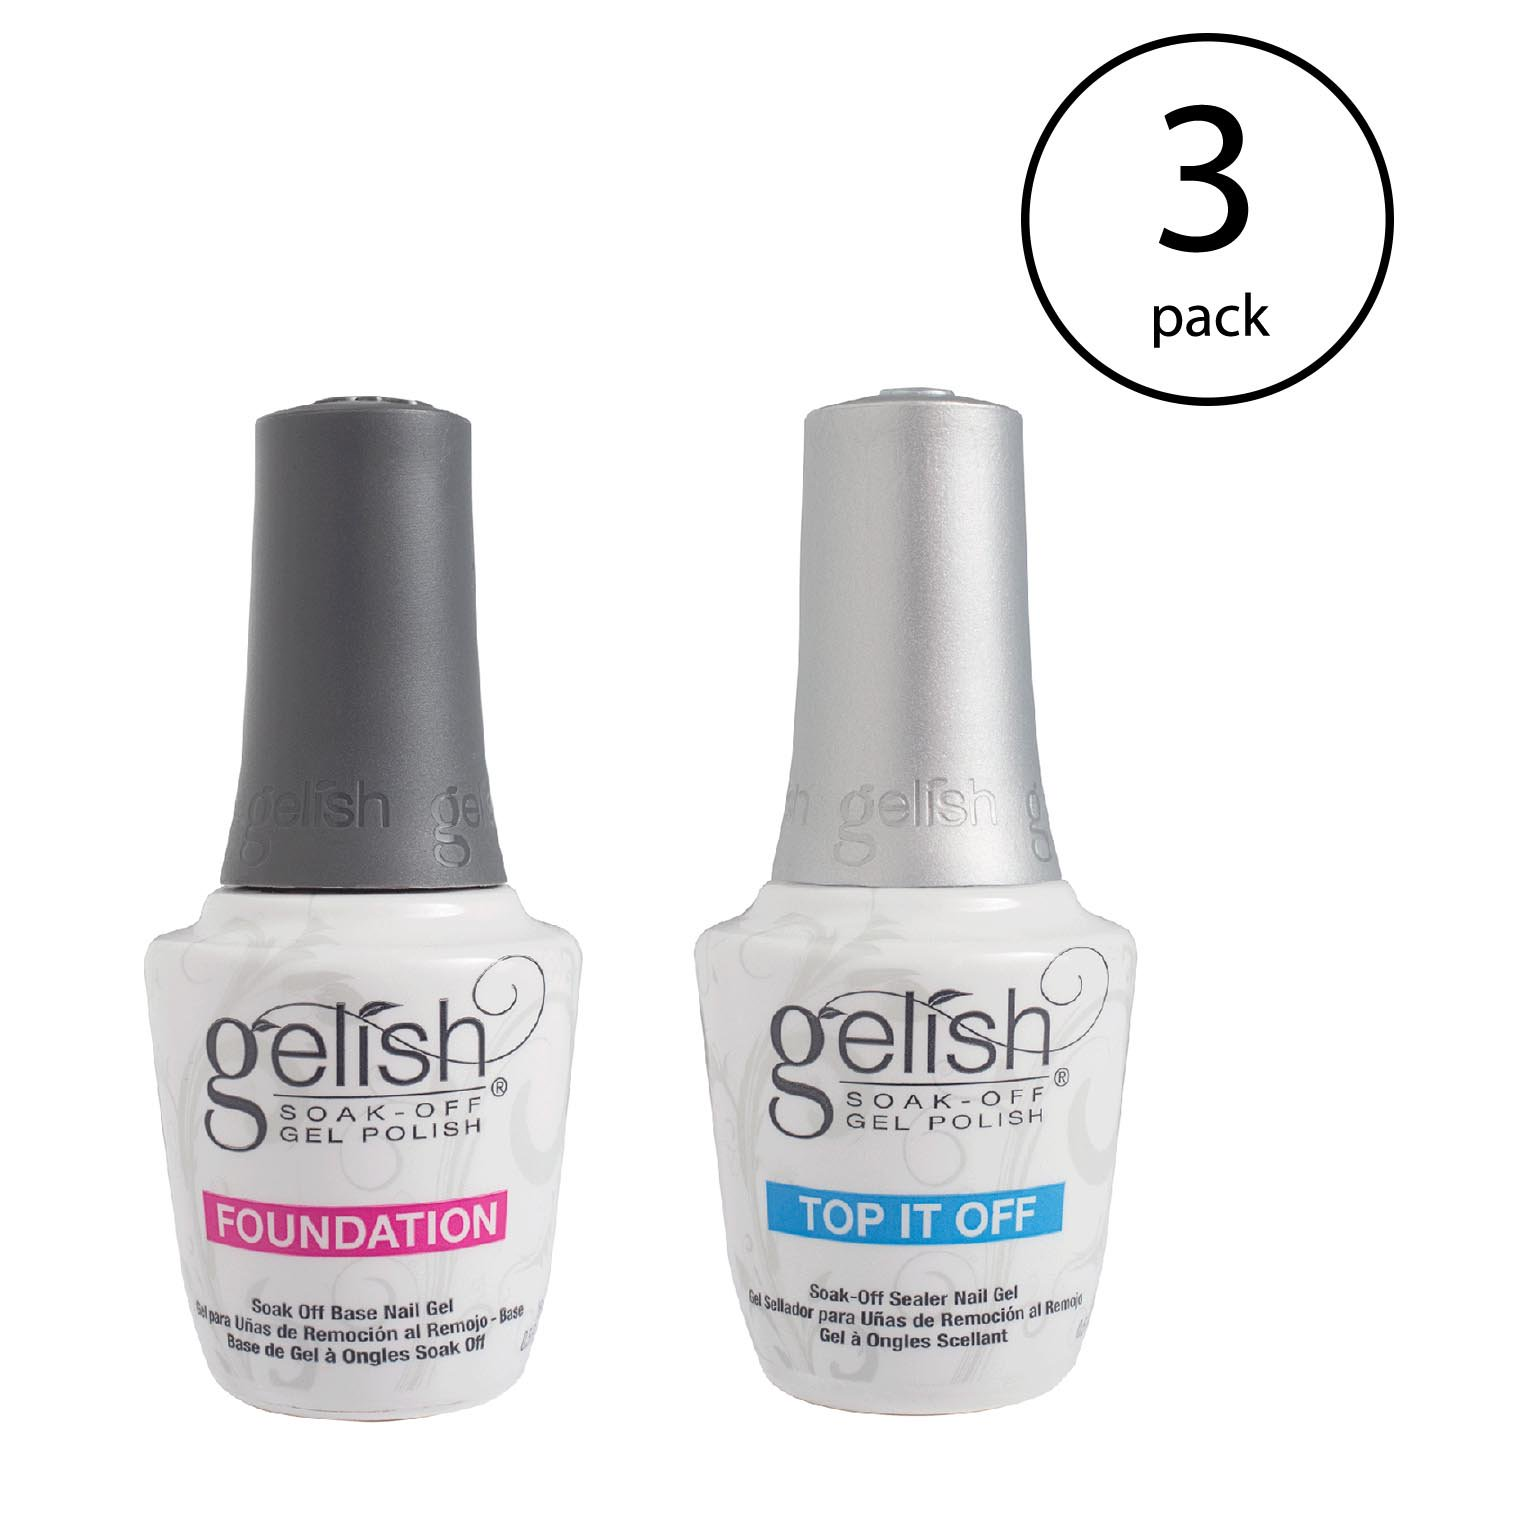 Gelish Dynamic Duo Foundation Base & Top It Off Sealer Gel Nail Polish (3 Pack)